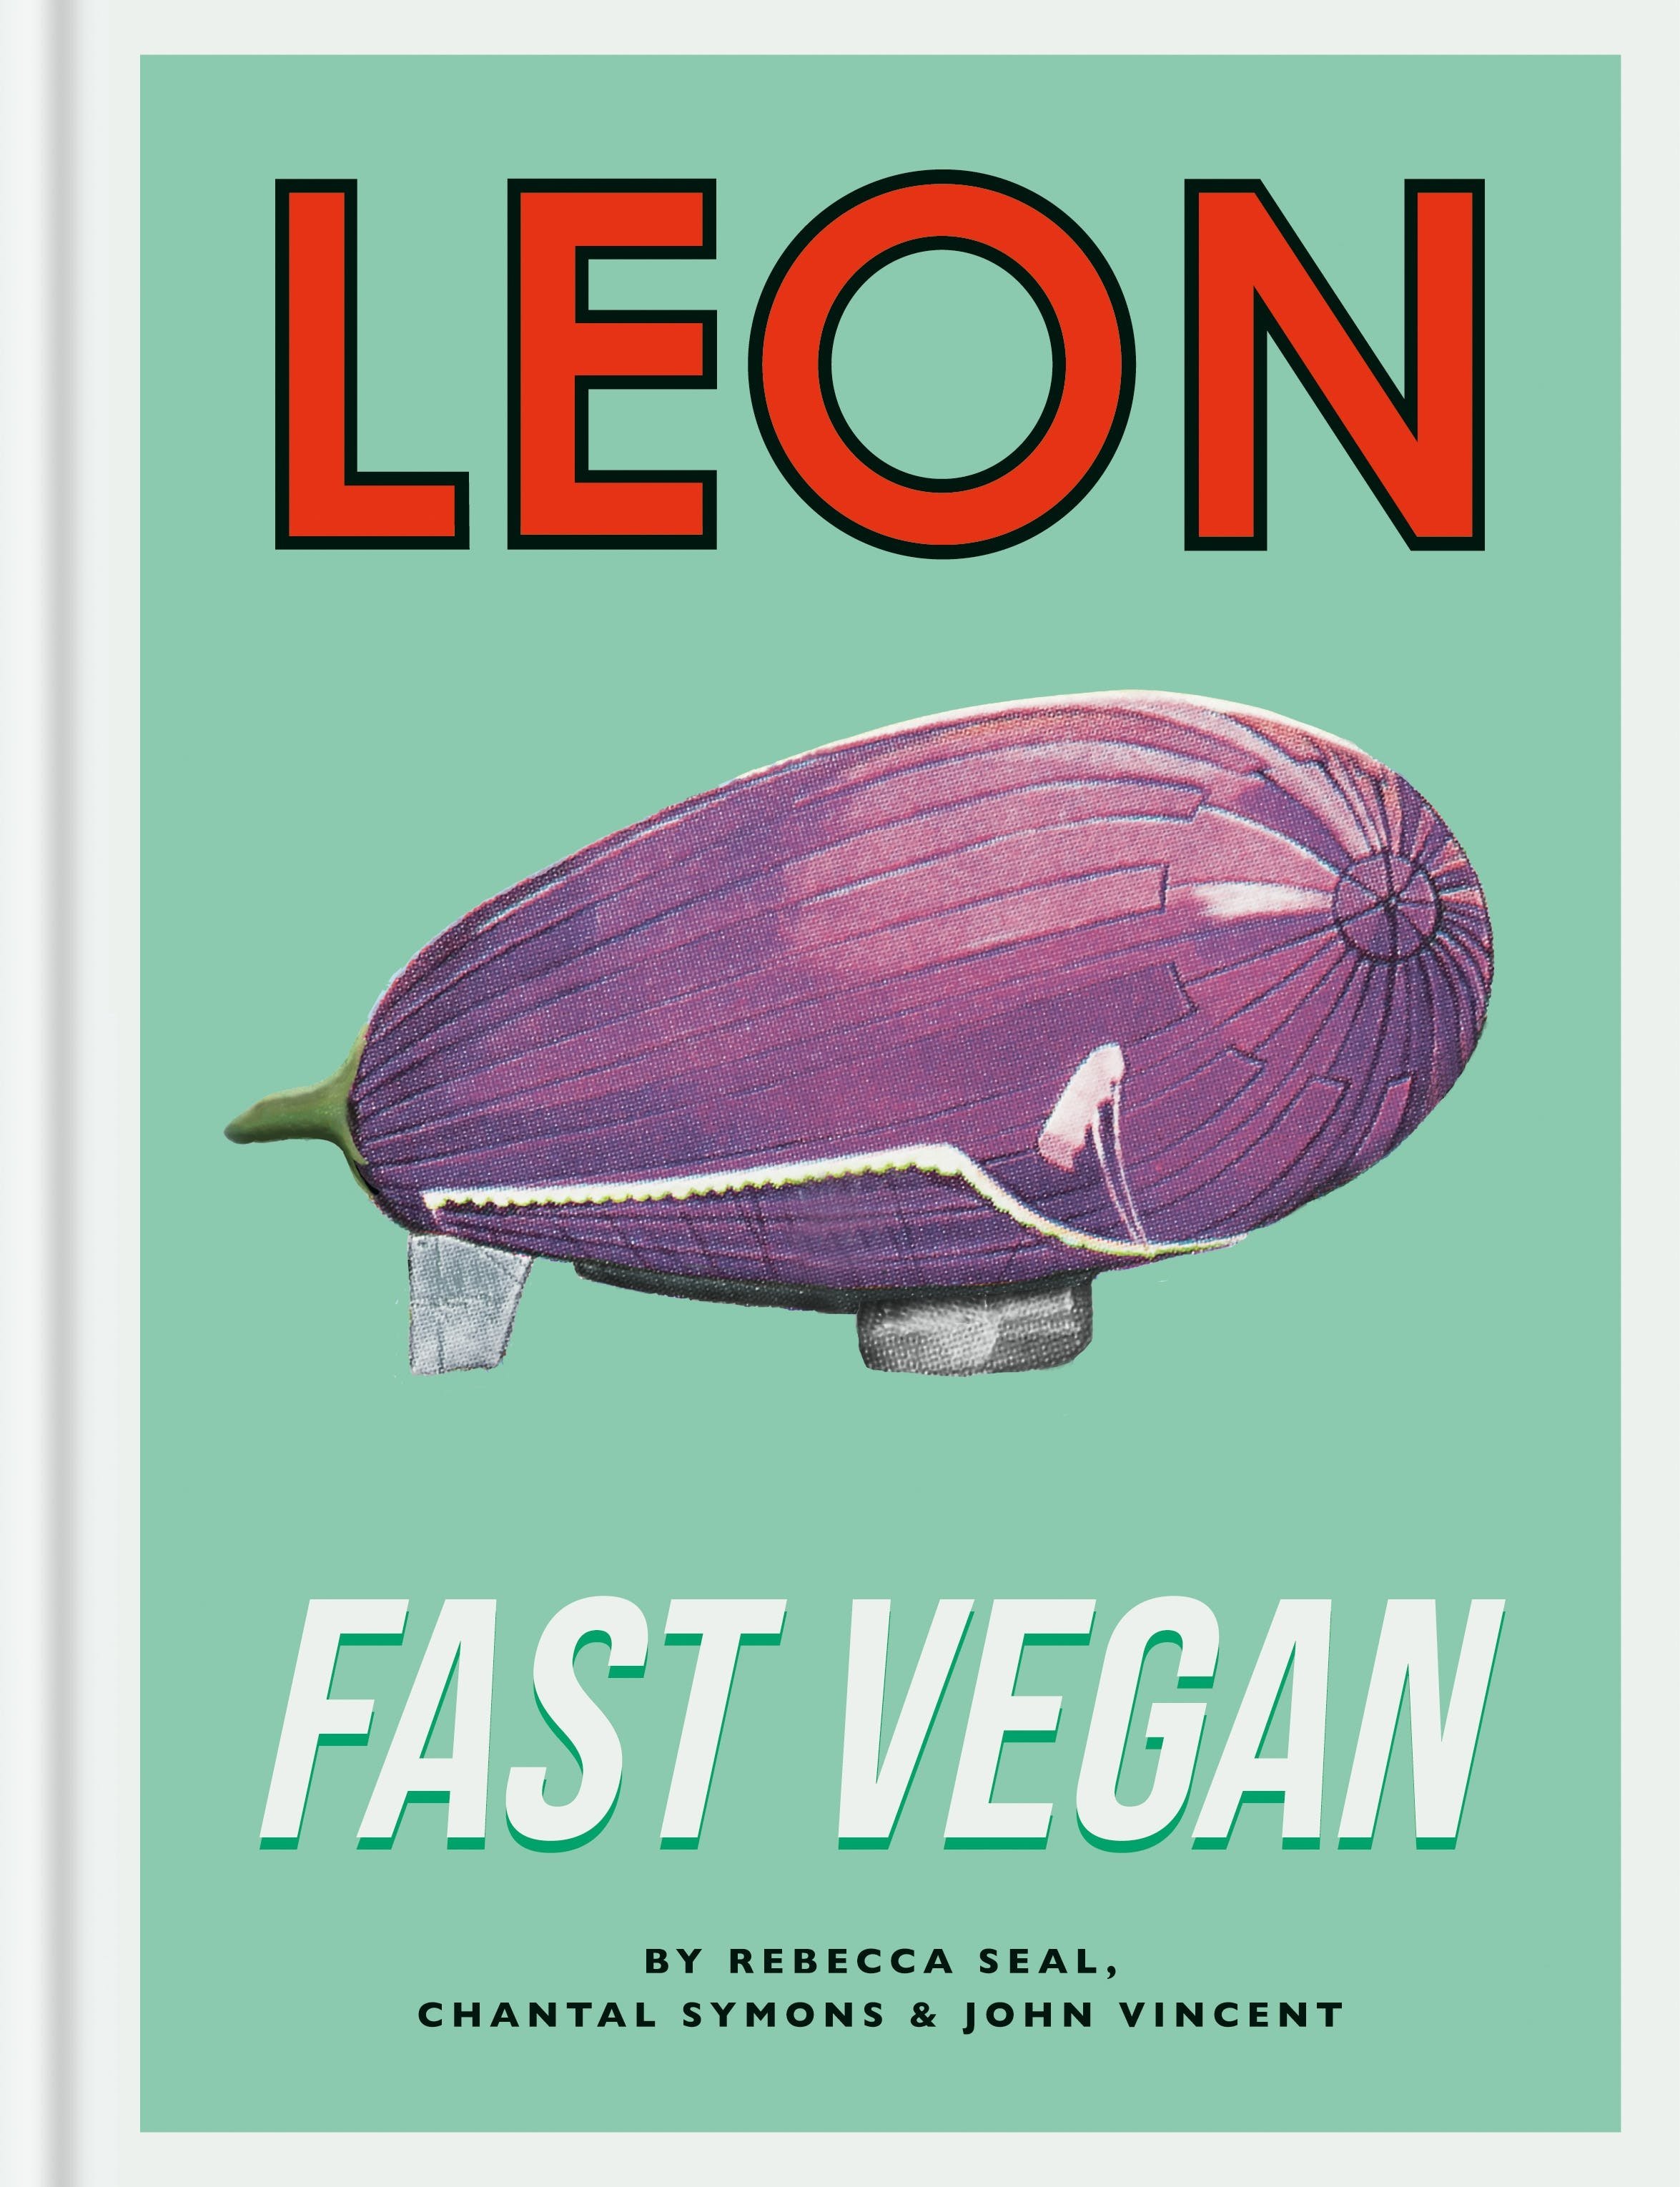 leon fast vegan book cover